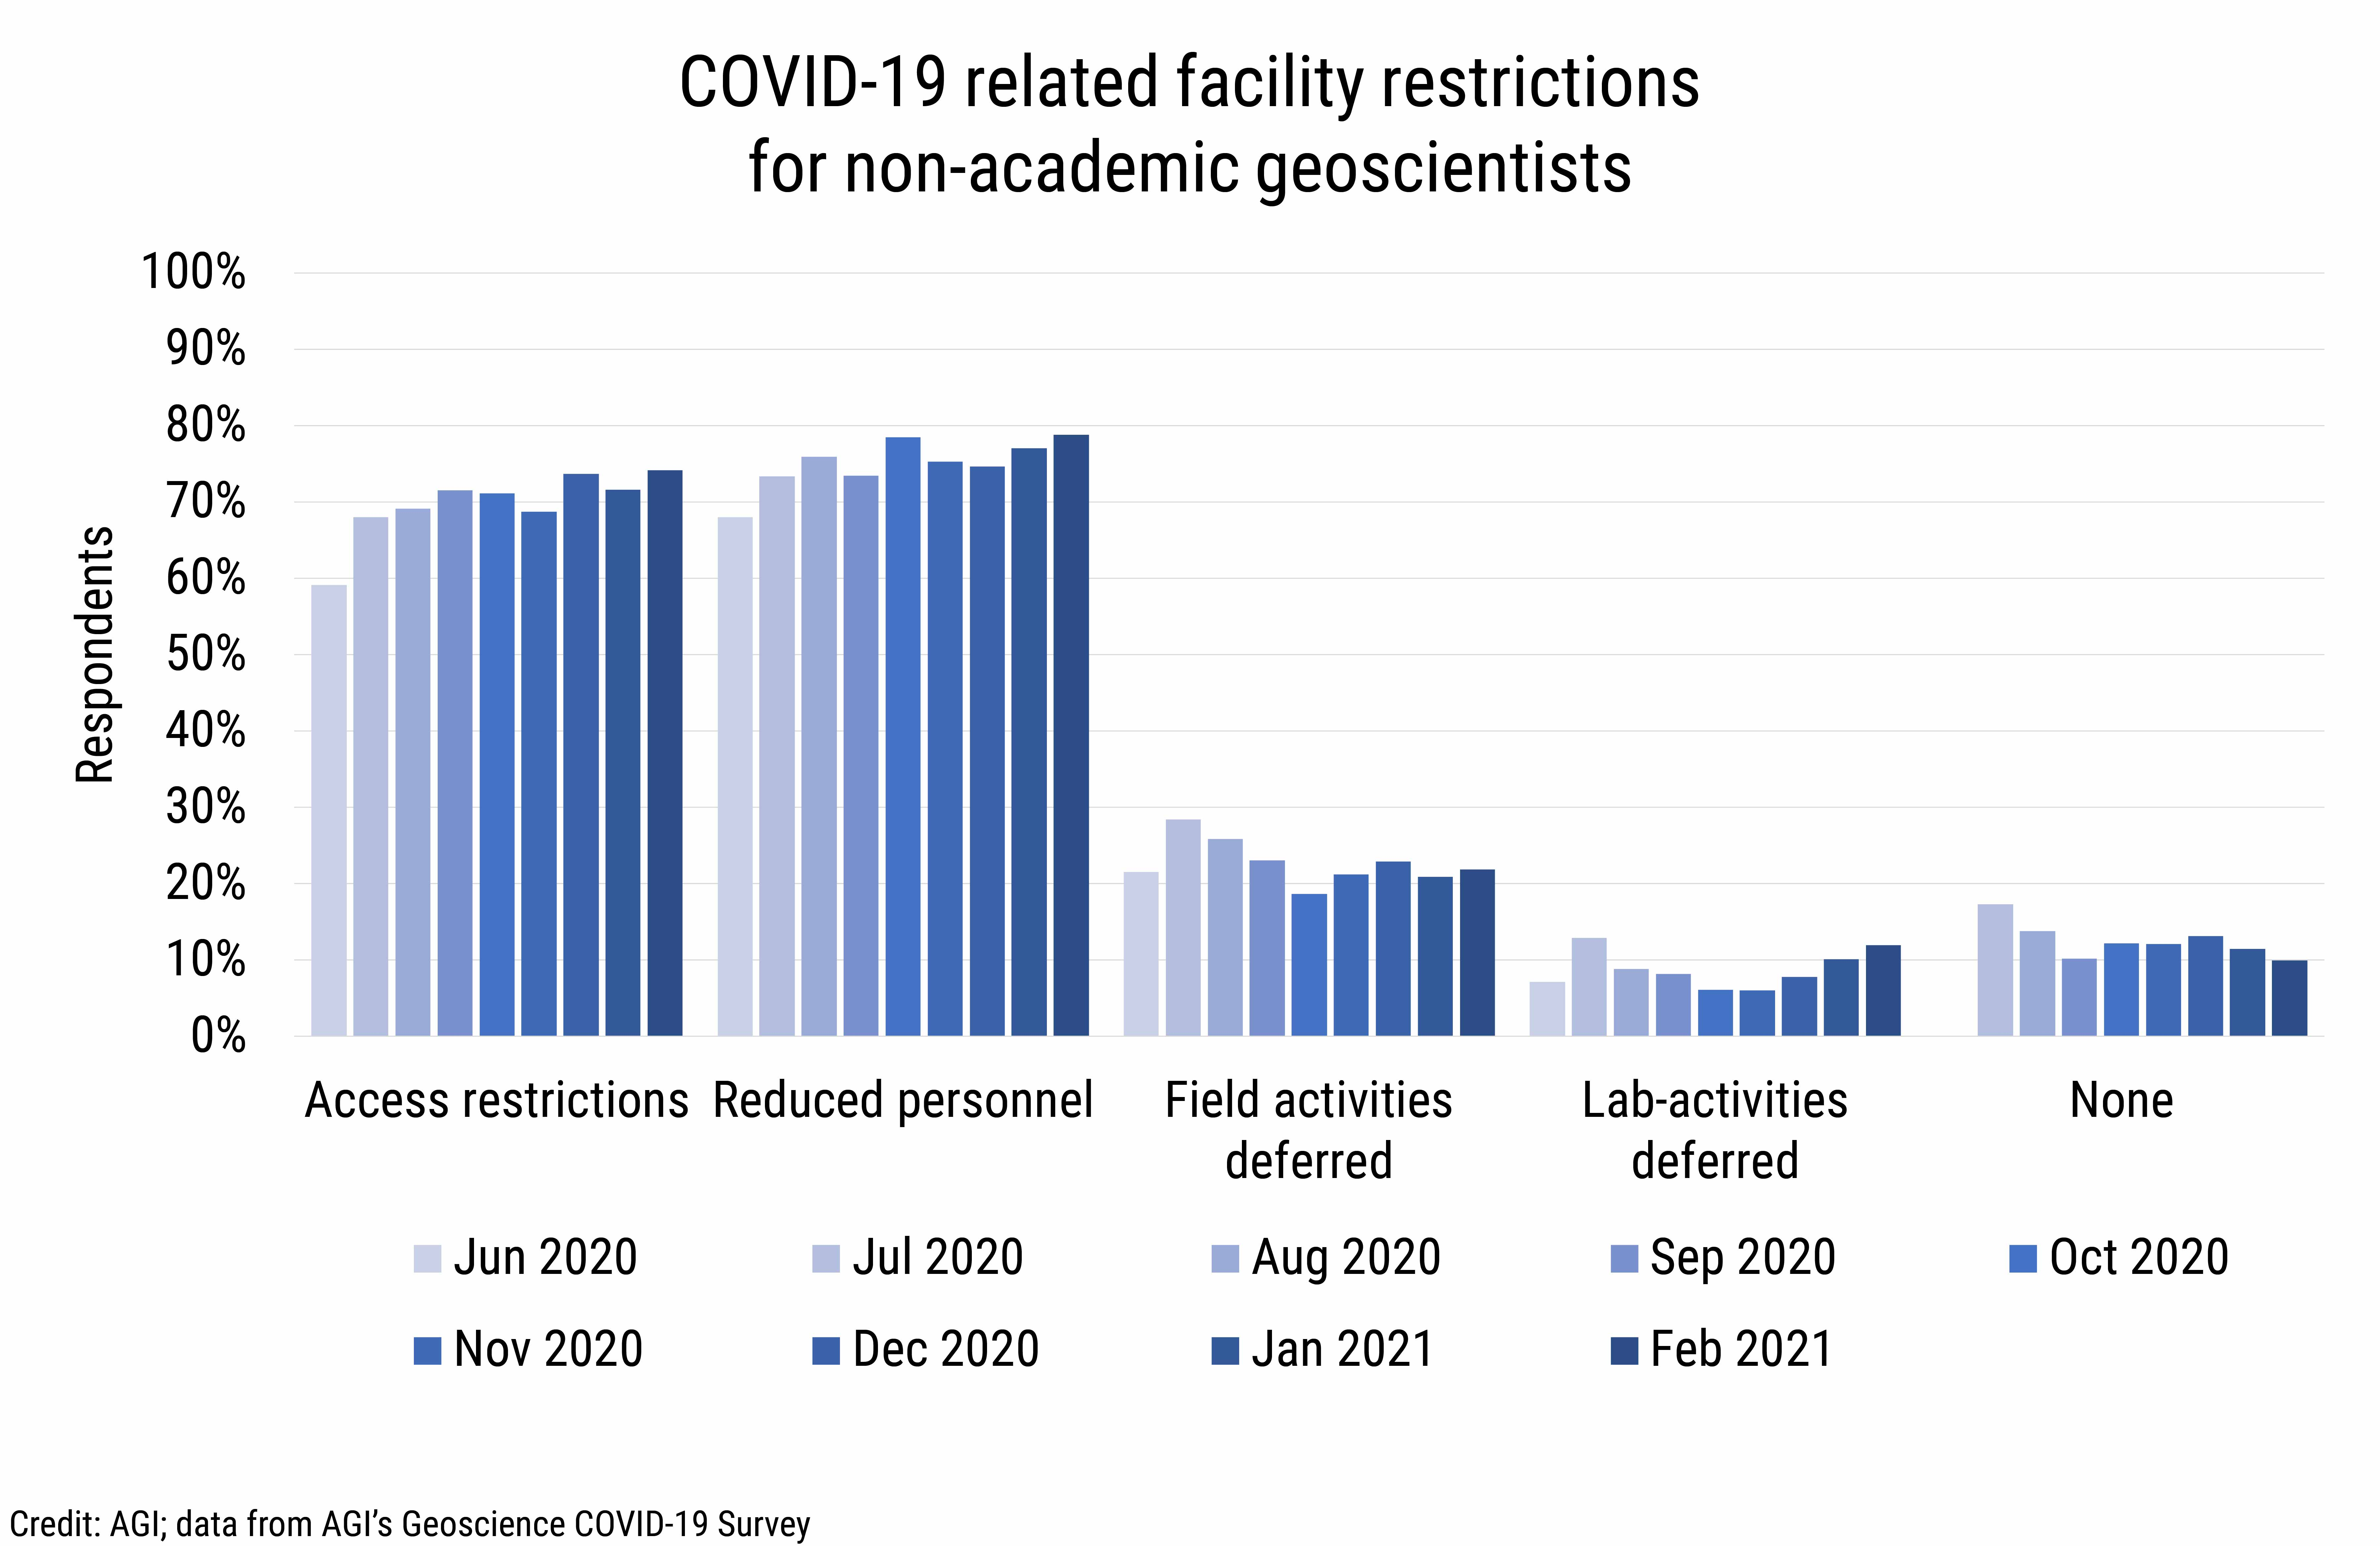 DB_2021-008 chart 02: COVID-19 related facility restrictions for non-academic geoscientists (Credit: AGI; data from AGI's Geoscience COVID-19 Survey)